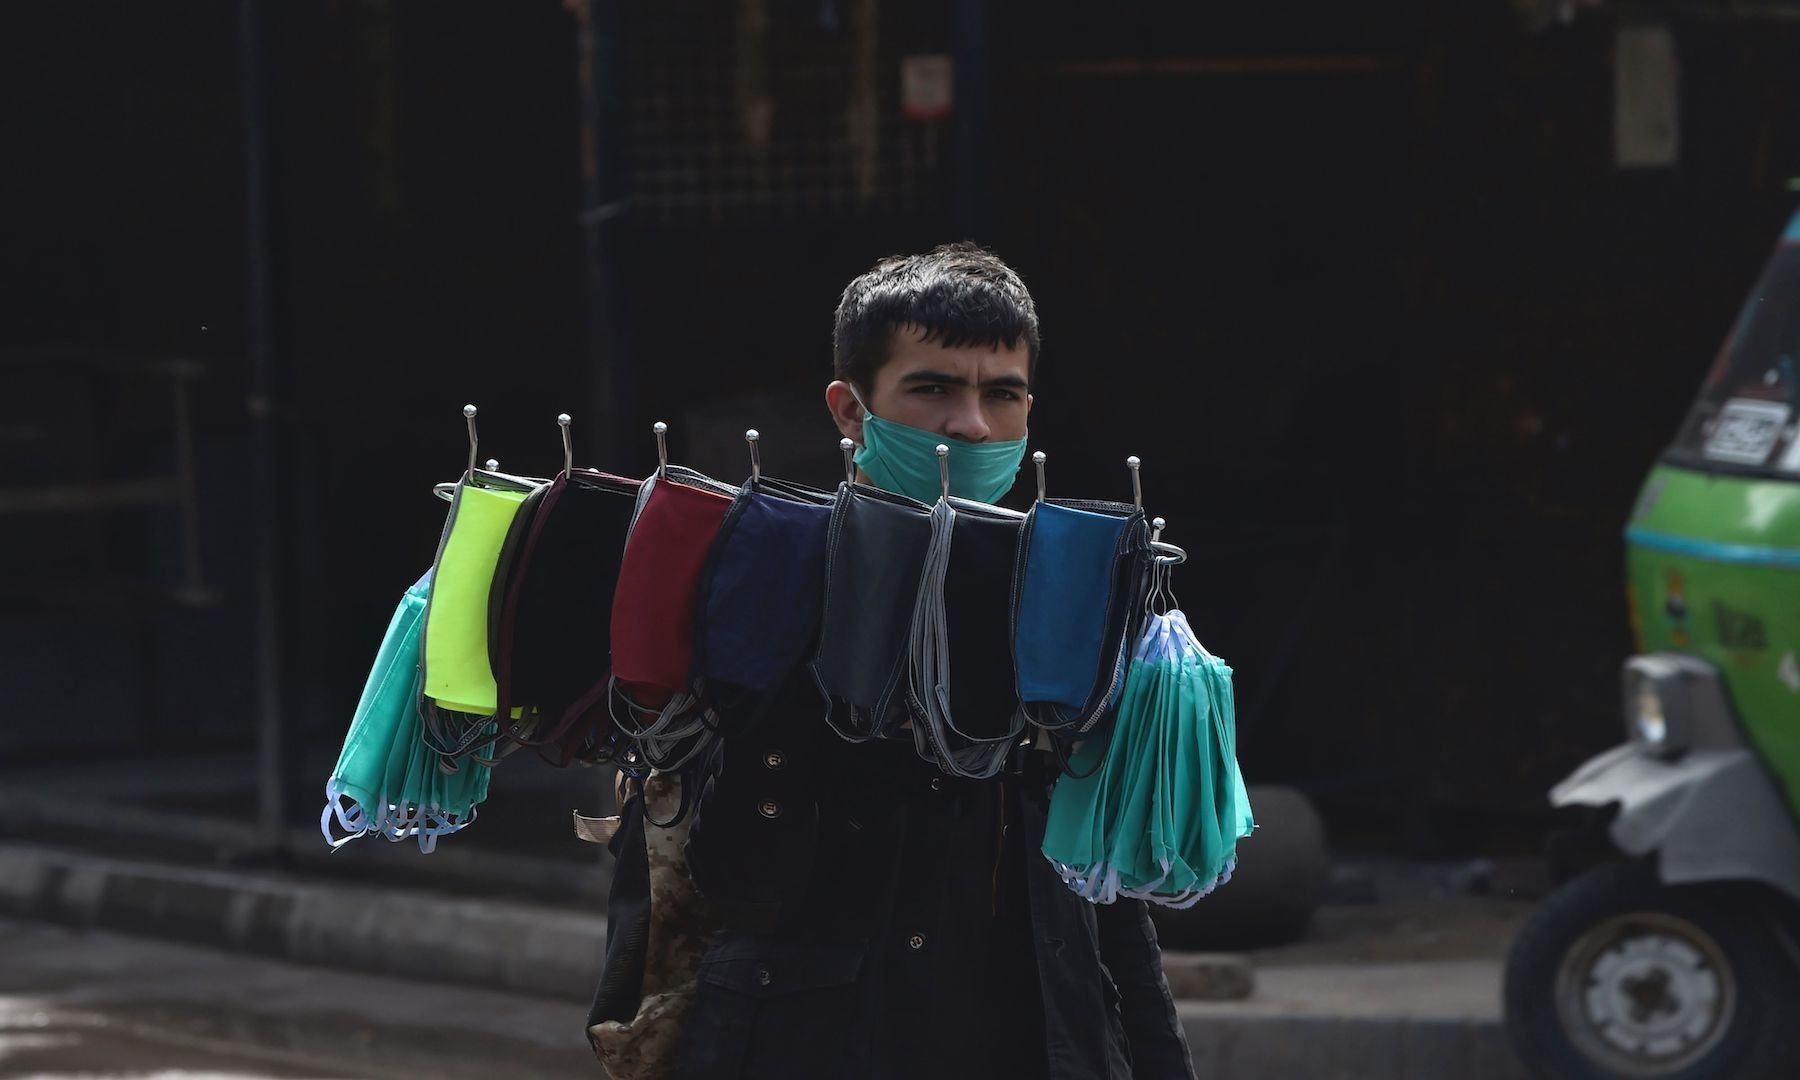 A vendor carries facemasks for sale on a deserted street during a lockdown amid concerns over the spread of Covid-19 in Lahore's old city on March 23. — AFP